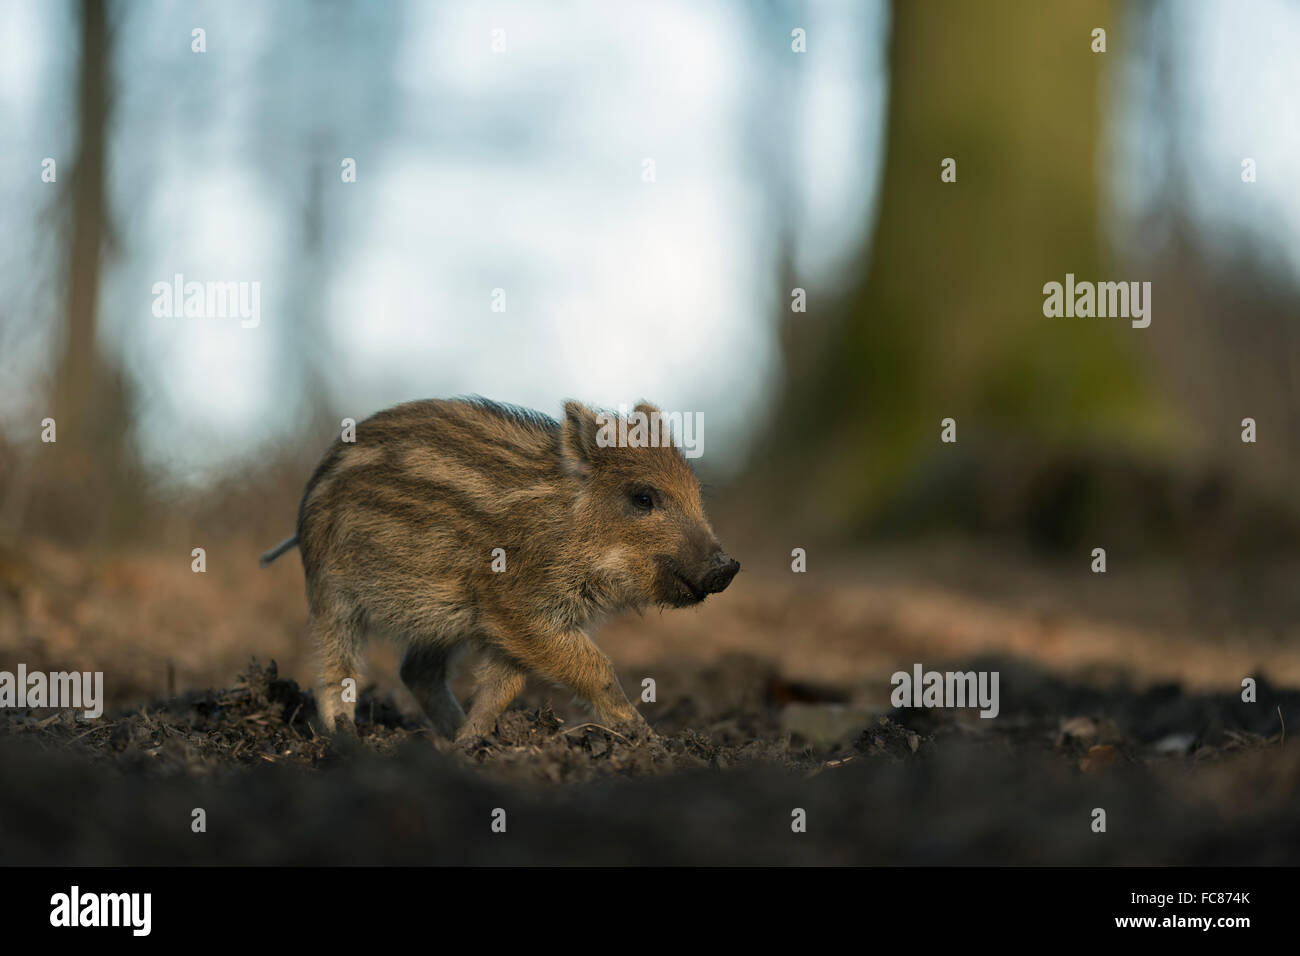 Wild Boar ( Sus scrofa ), piglet, striped fur, on its way through a natural beech forest, low point of view, Germany. - Stock Image